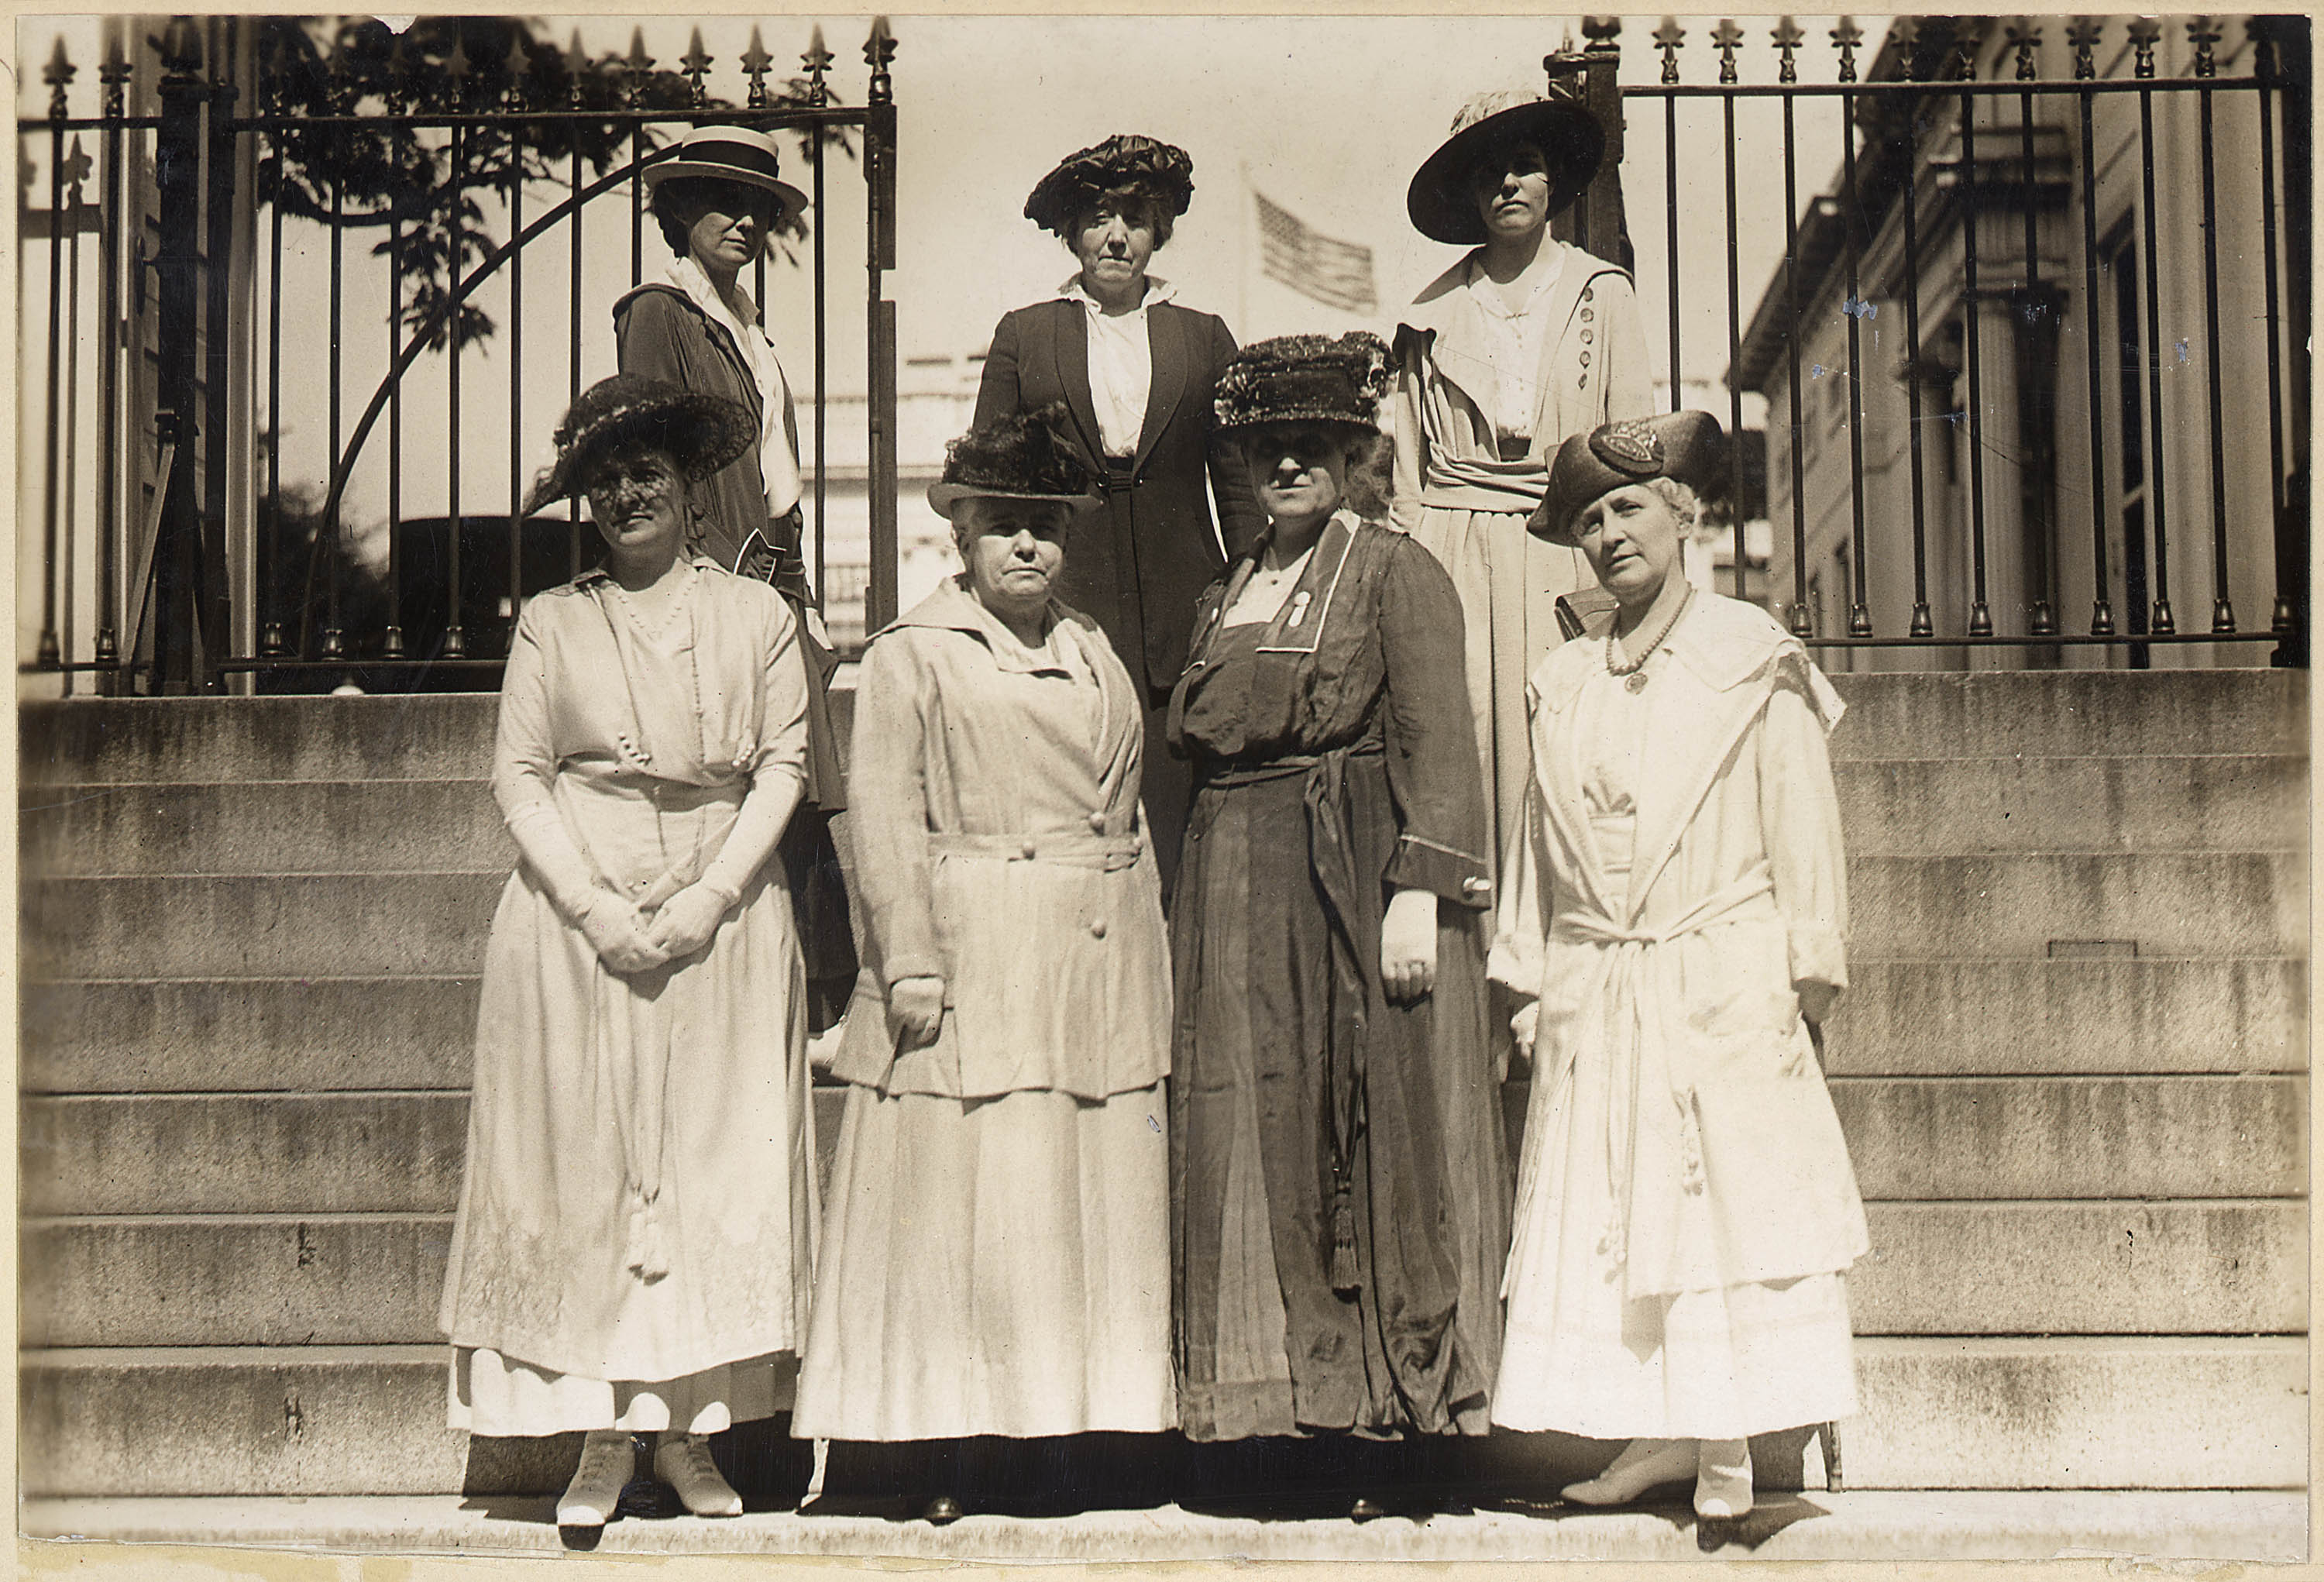 This delegation of officers of the National American Woman Suffrage Association received from President Wilson a memorial to the French women in which he advocates the federal woman suffrage amendment. The picture was made on steps leading to executive offices of the White House. Front row, left to right: Mrs. Wood Park, Dr. Anna Howard Shaw, Mrs. Carrie Chapman Catt, Mrs. Helen H. Gardner: second row, Miss Rose Young, Mrs. George Bass, and Miss Ruth White.